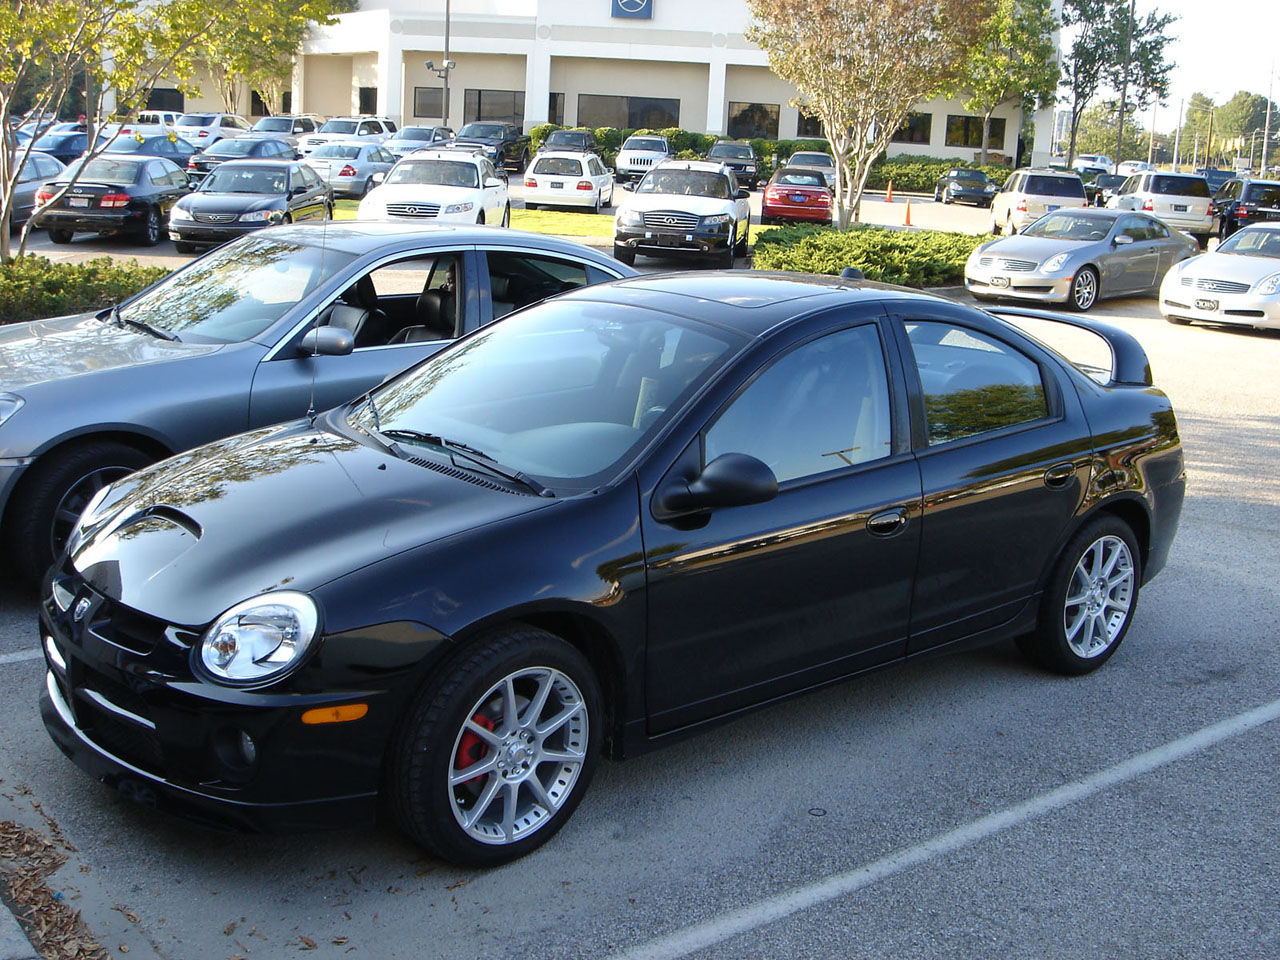 2005 dodge neon srt 4 mopar stage 2 pictures mods upgrades wallpaper. Black Bedroom Furniture Sets. Home Design Ideas